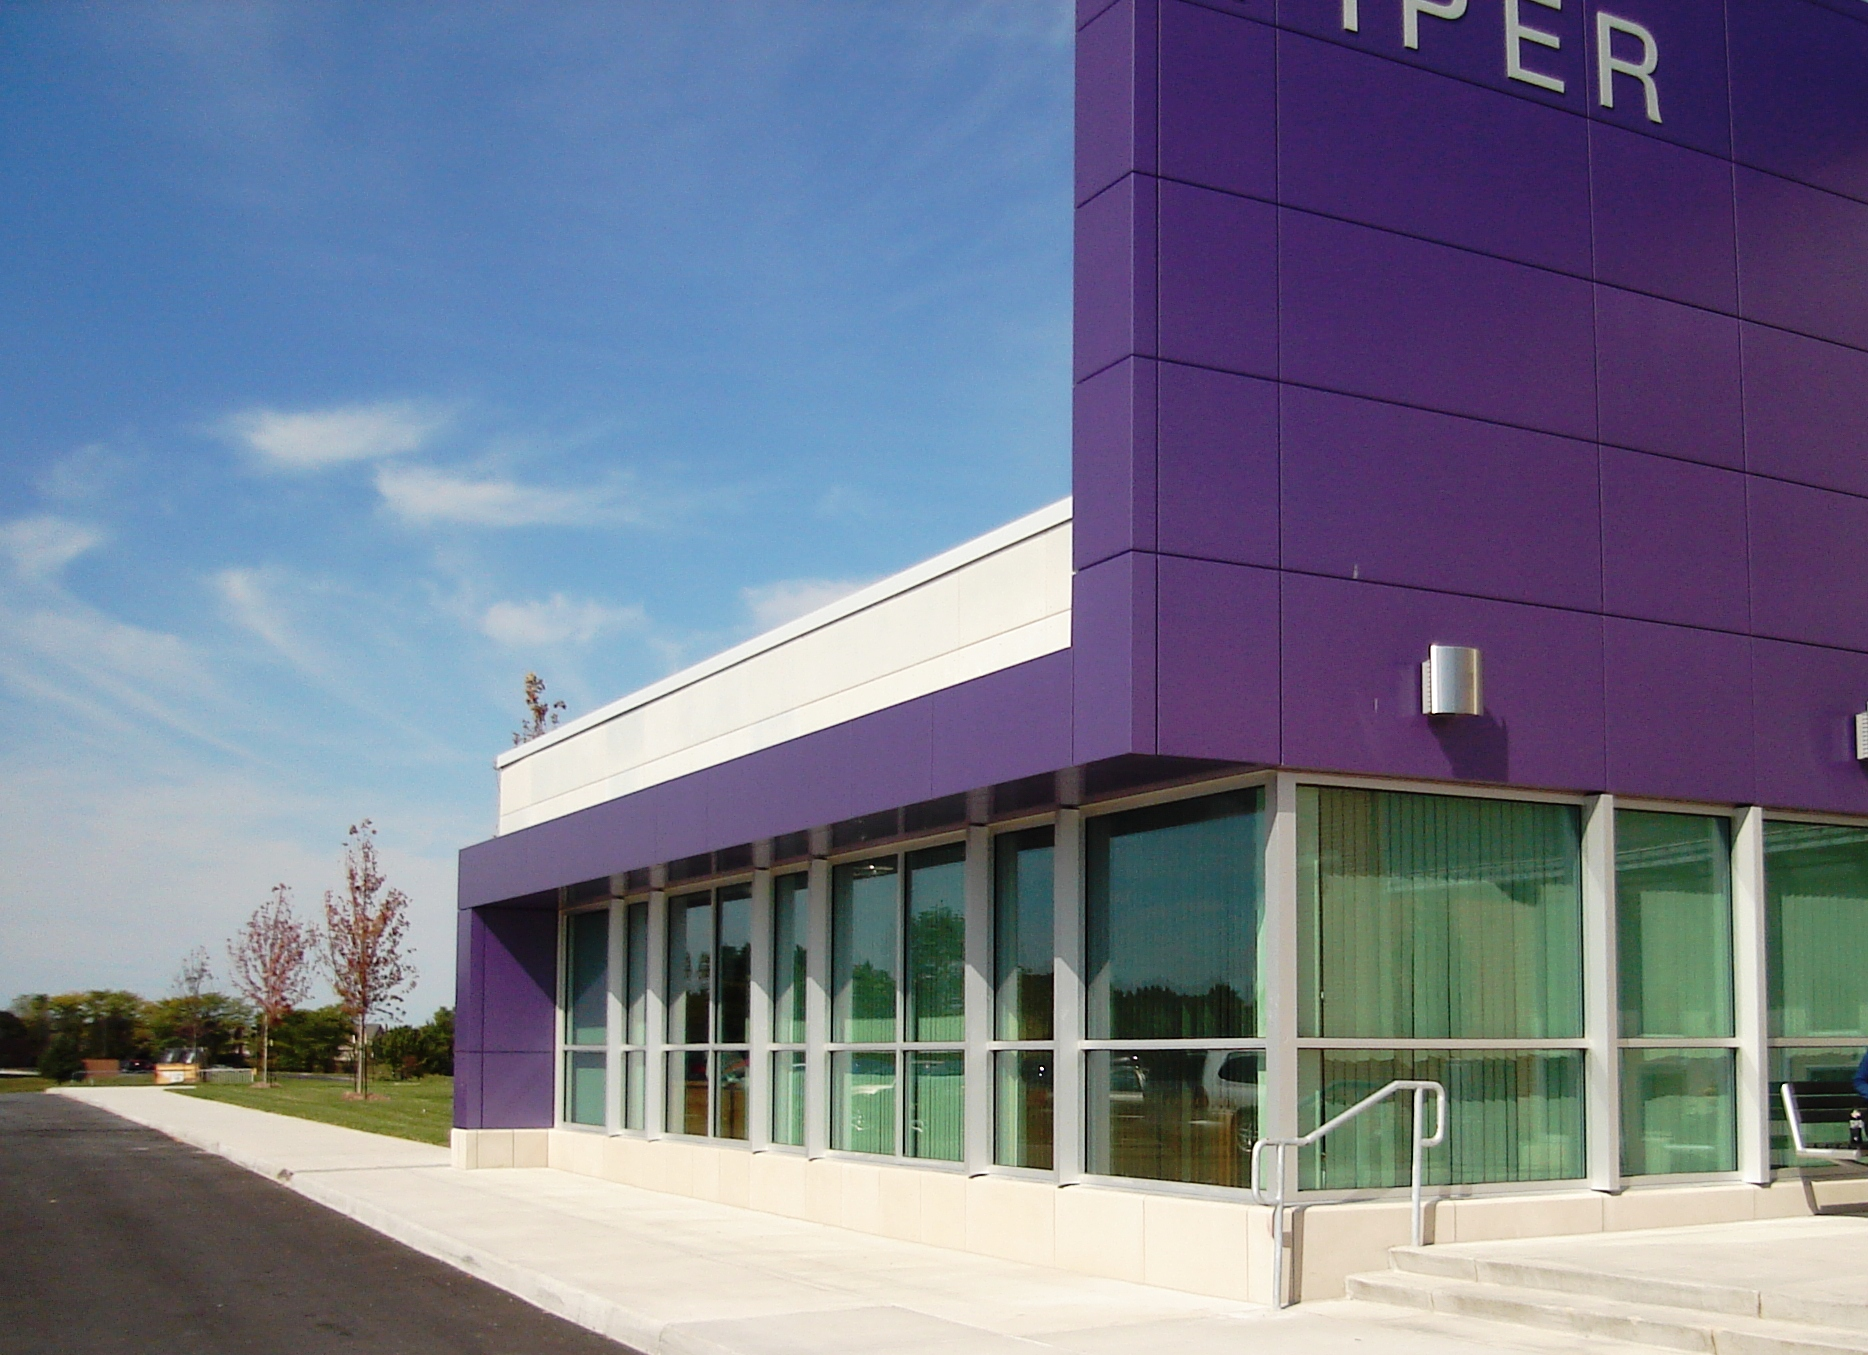 Piper High School (Kansas City)